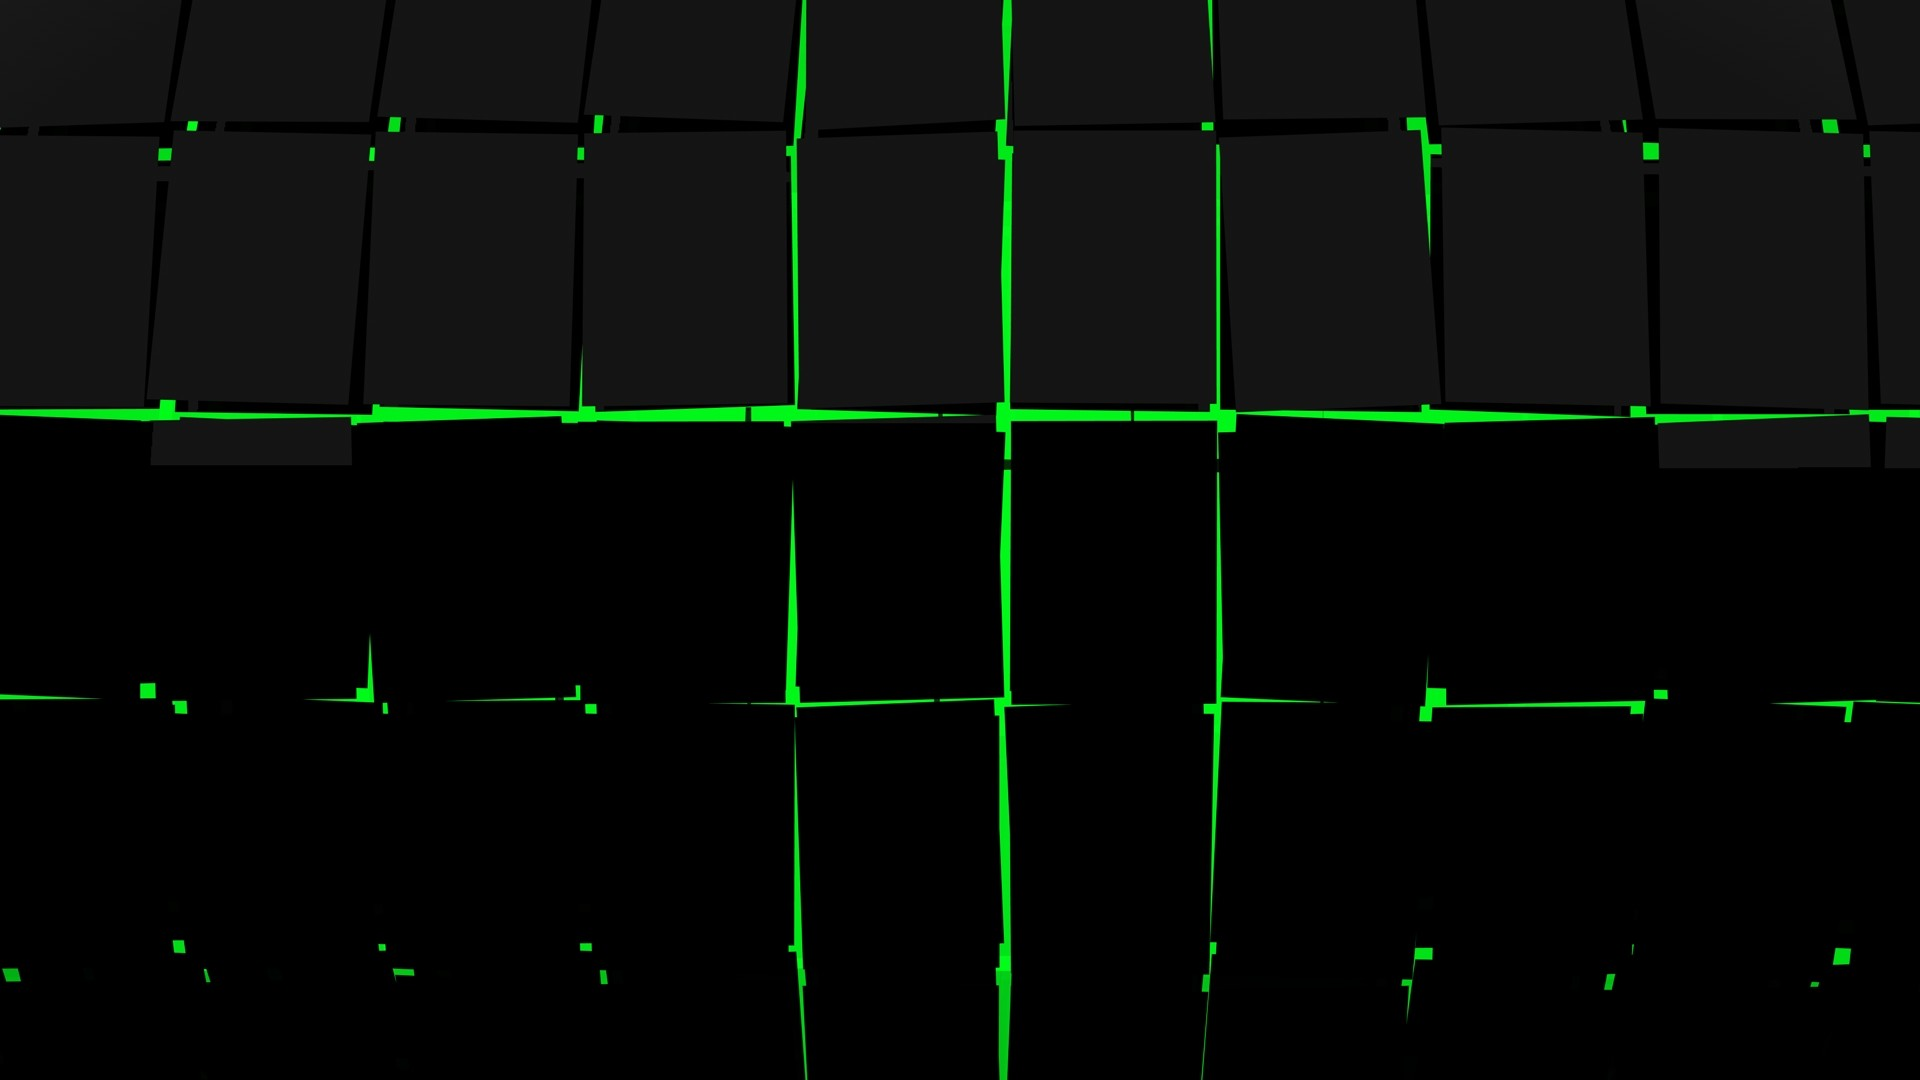 Green And Black Images 30 Cool Wallpaper